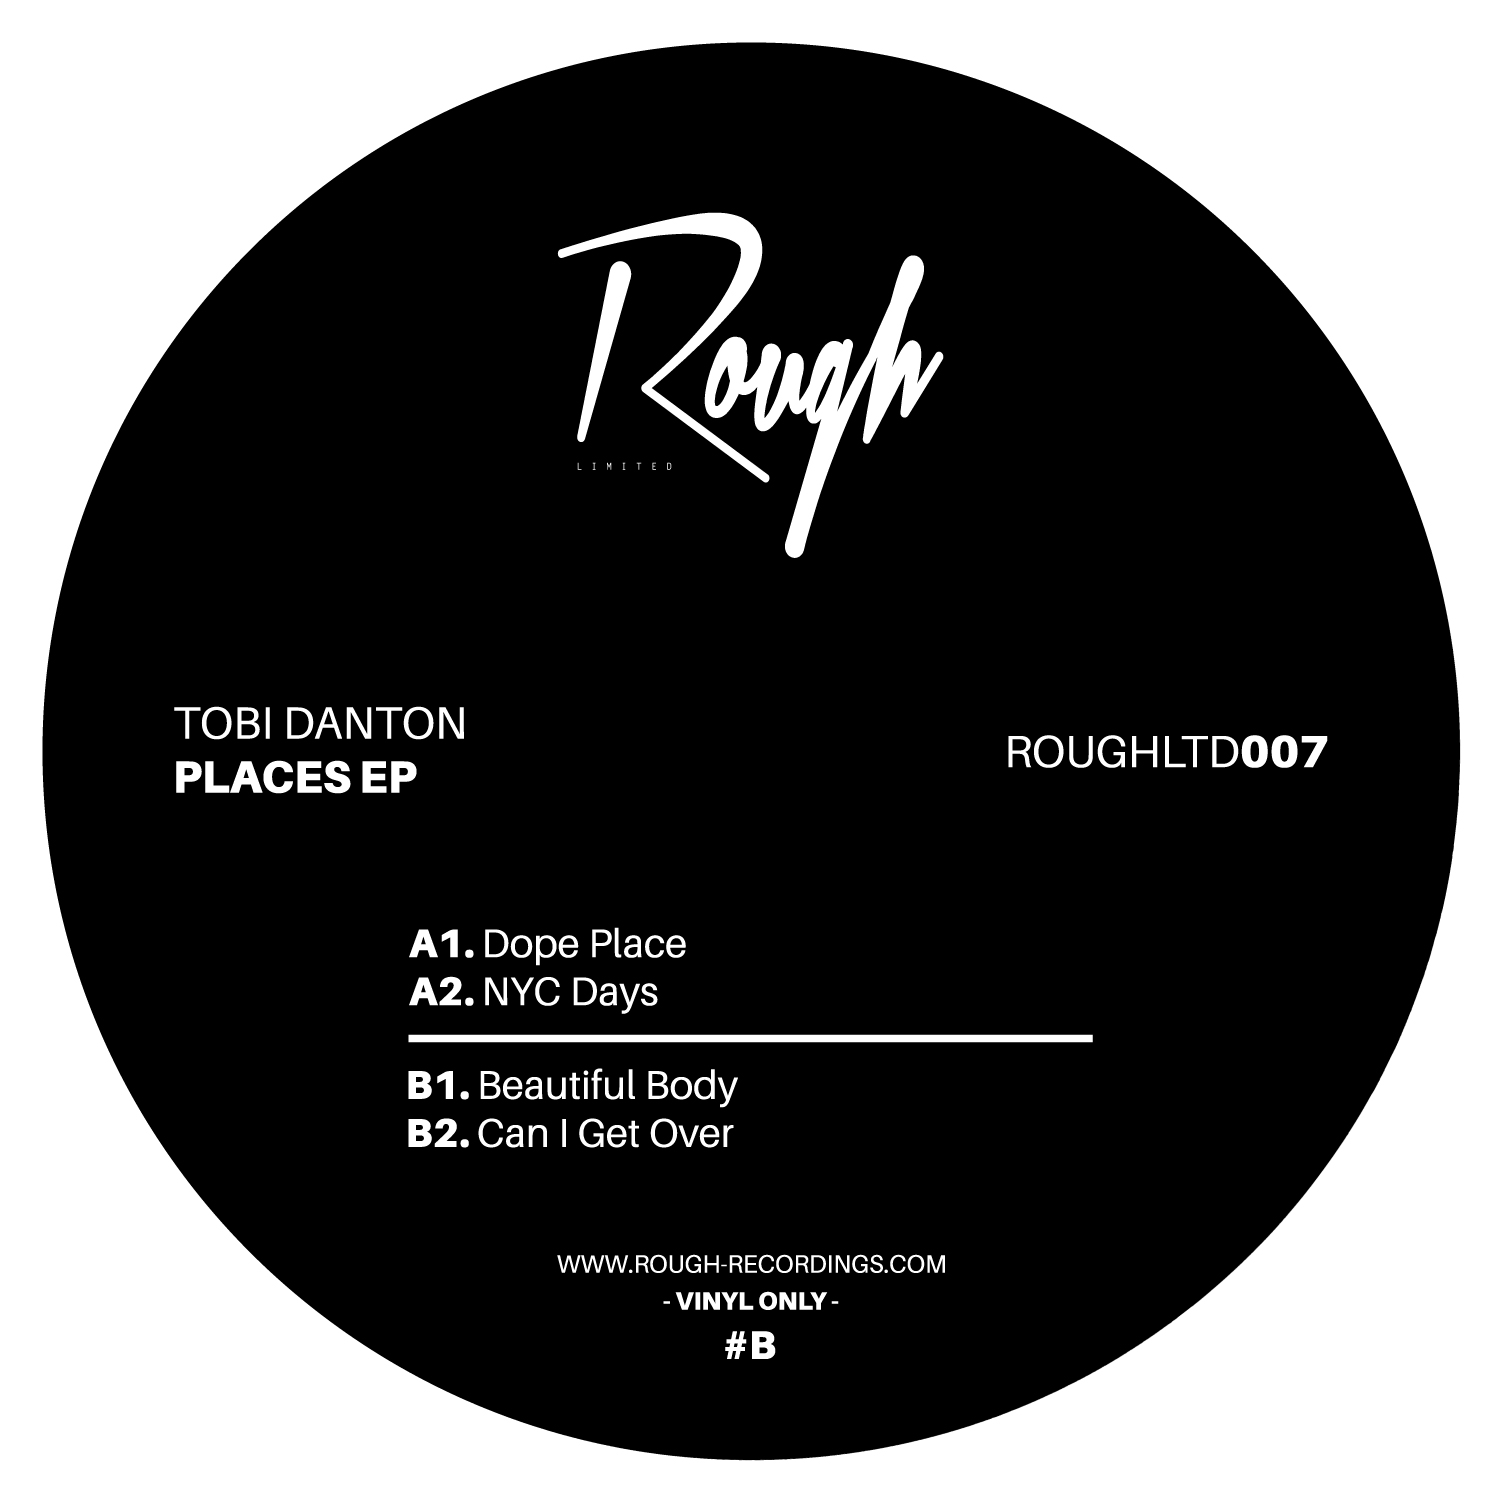 https://www.rough-recordings.com/wp-content/uploads/ROUGHLTD007_B-1.jpg